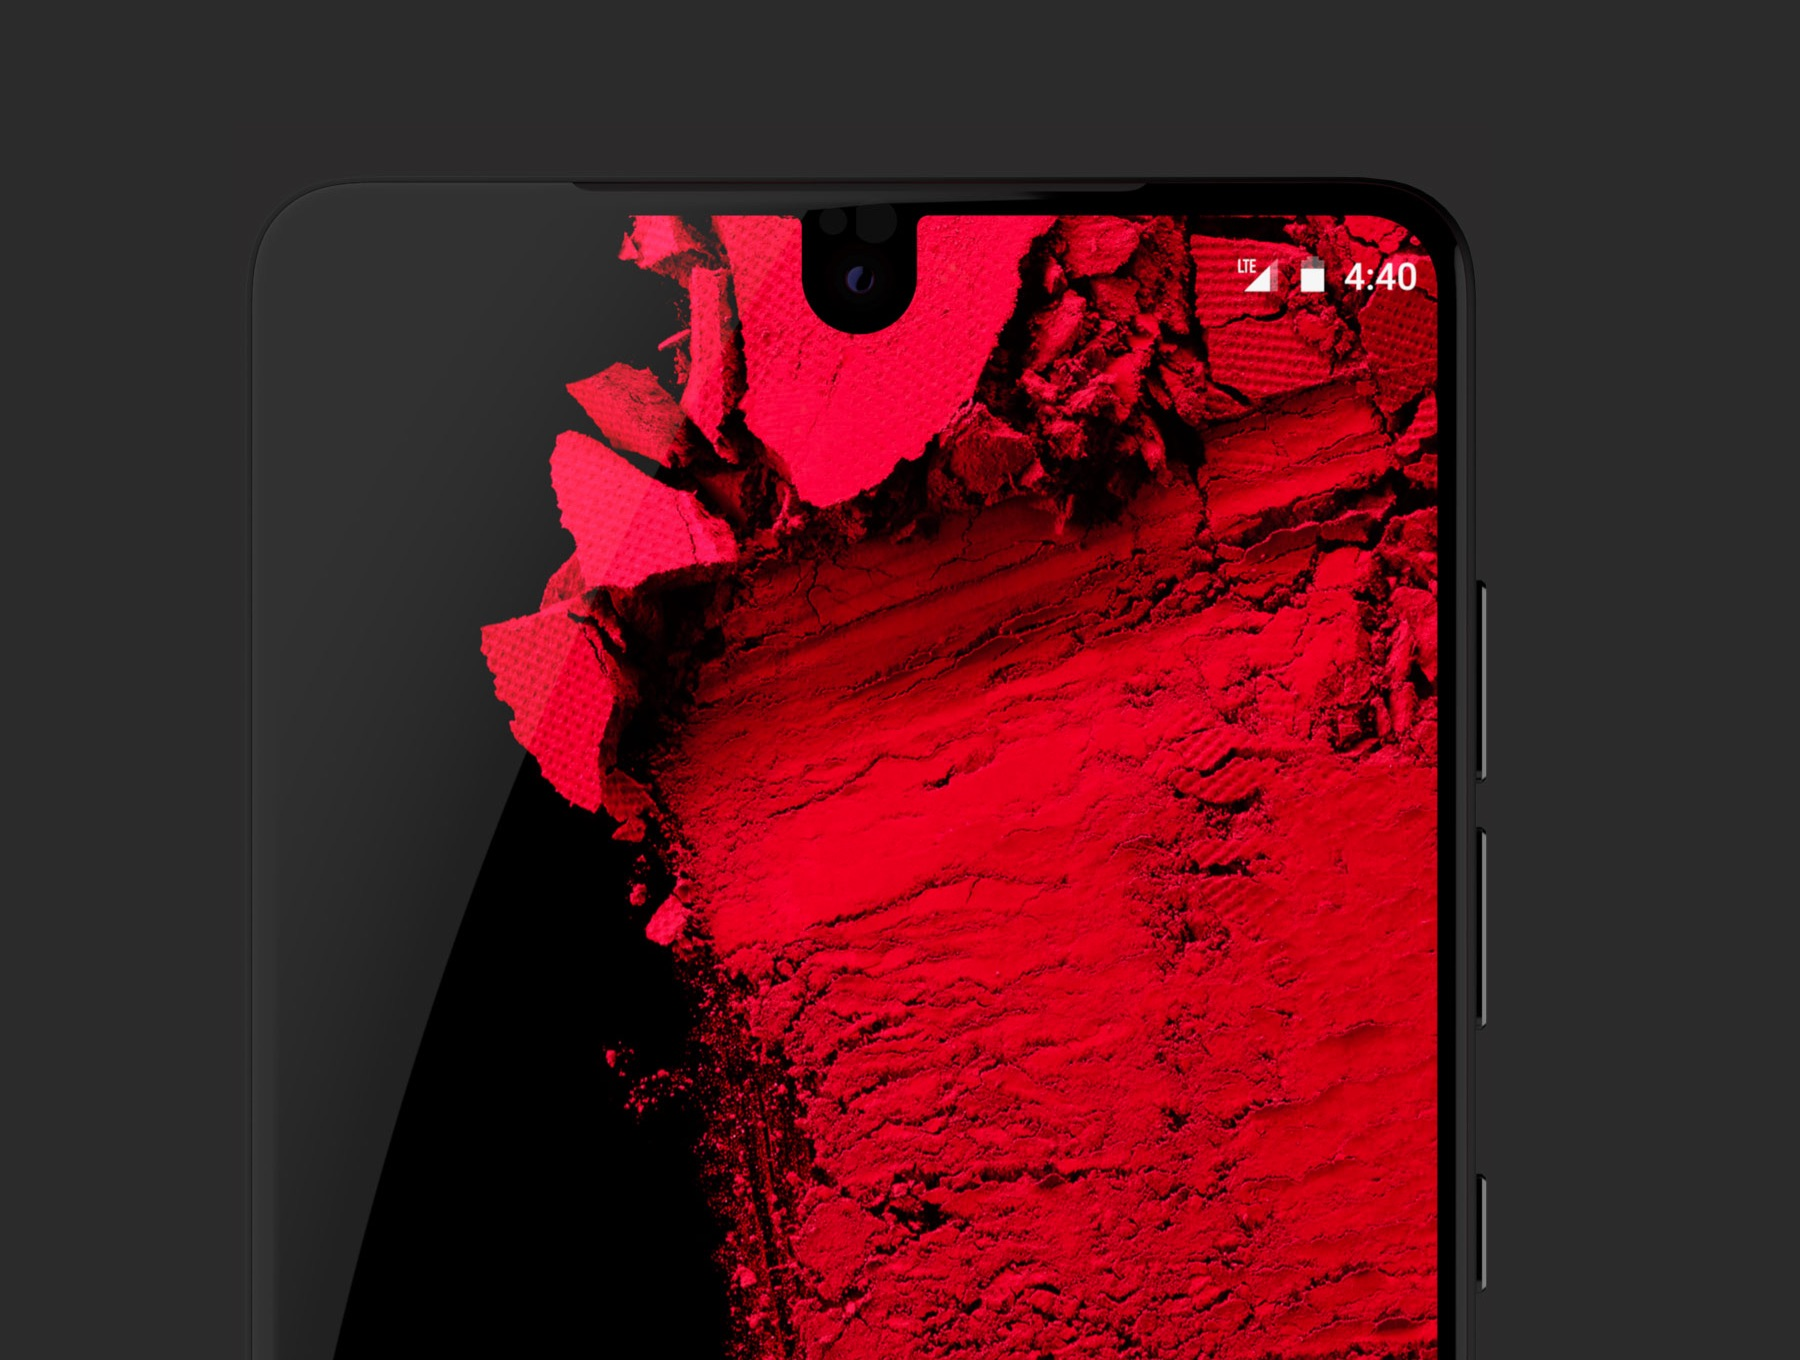 essential Essential Phone Google hmd global idc Nokia